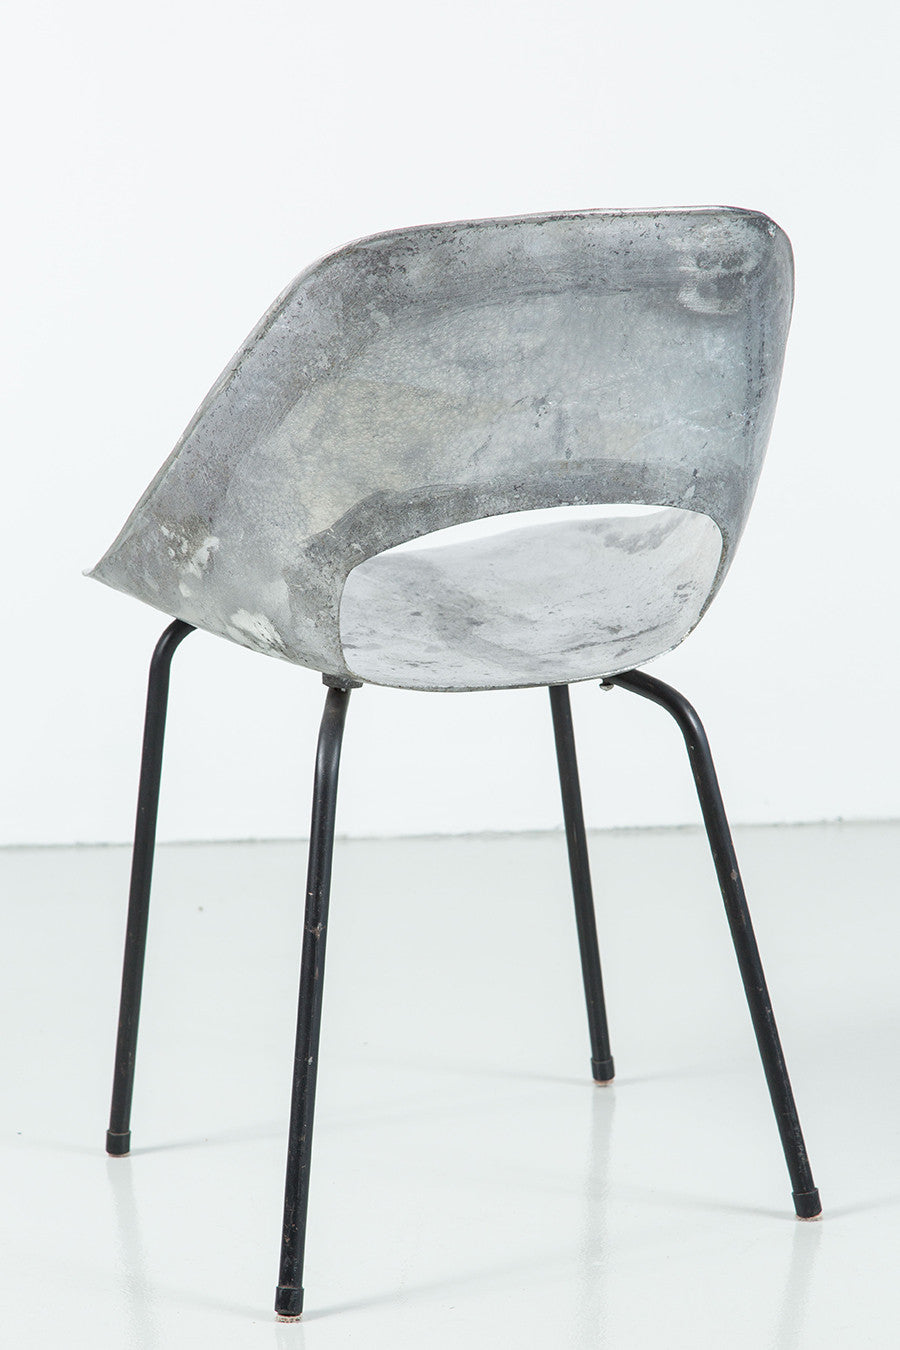 Tonneau cast aluminum chairs by pierre guariche ·